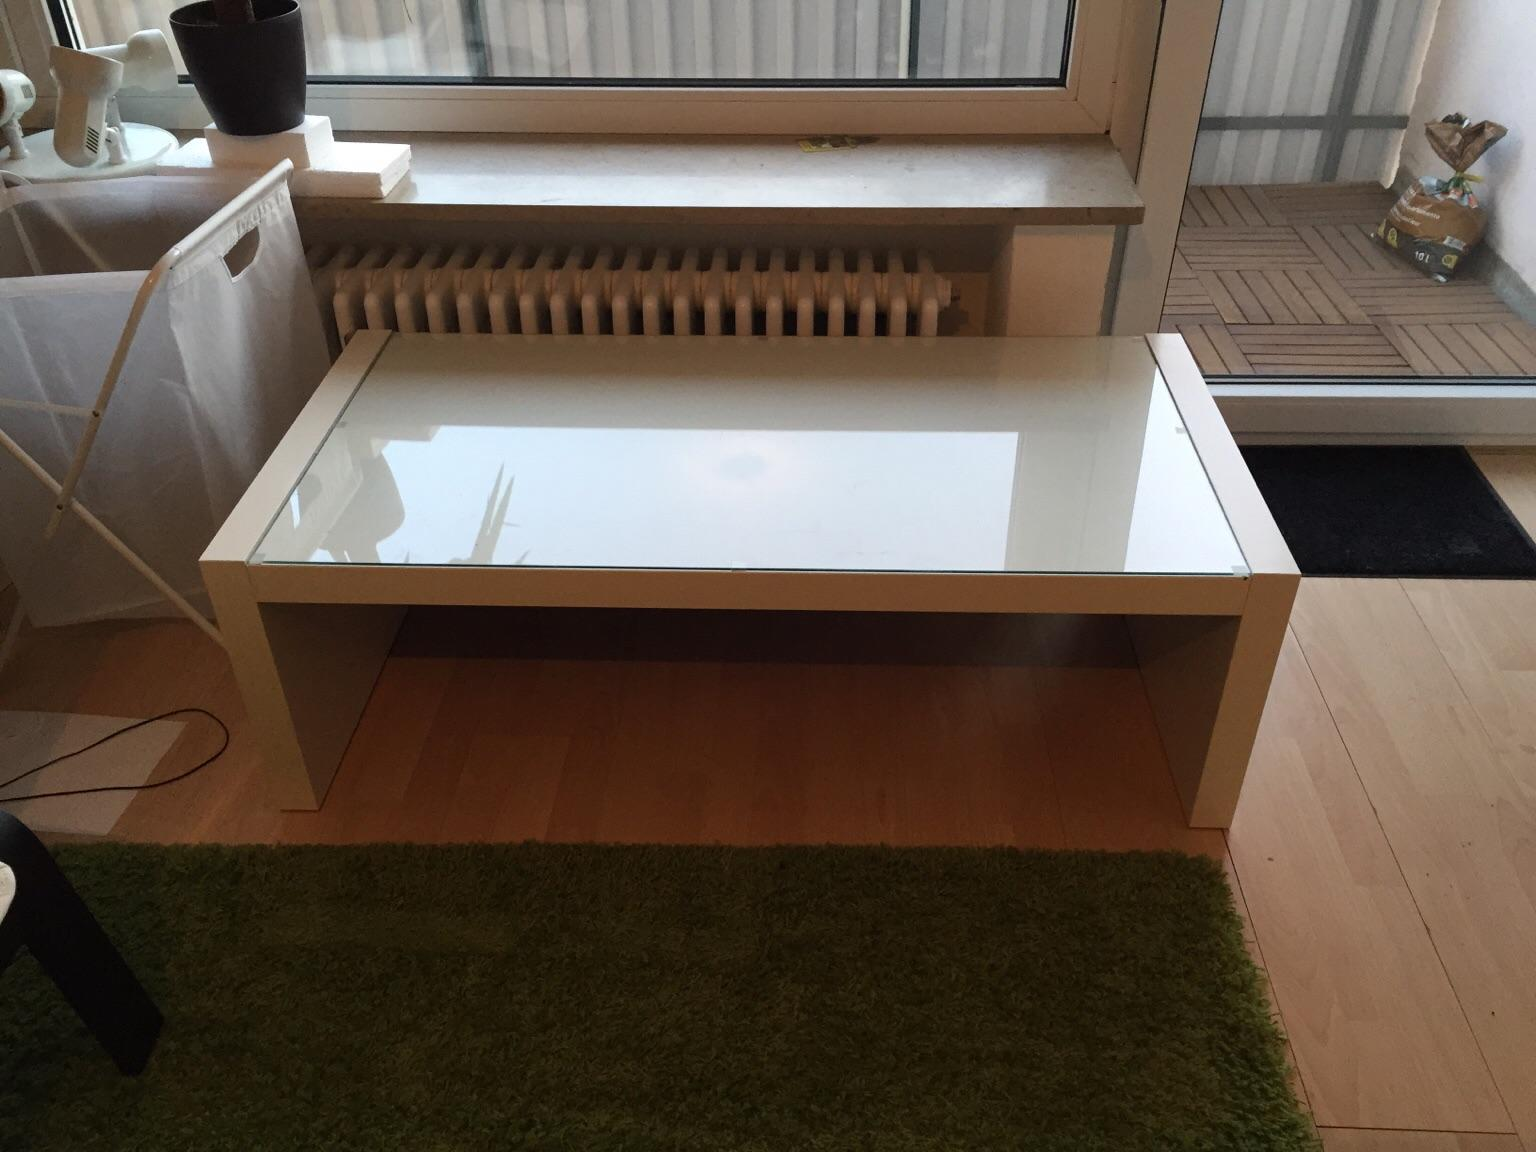 Ikea Expedit Couchtisch Mit Glasplatte In 81241 München For 15 00 For Sale Shpock